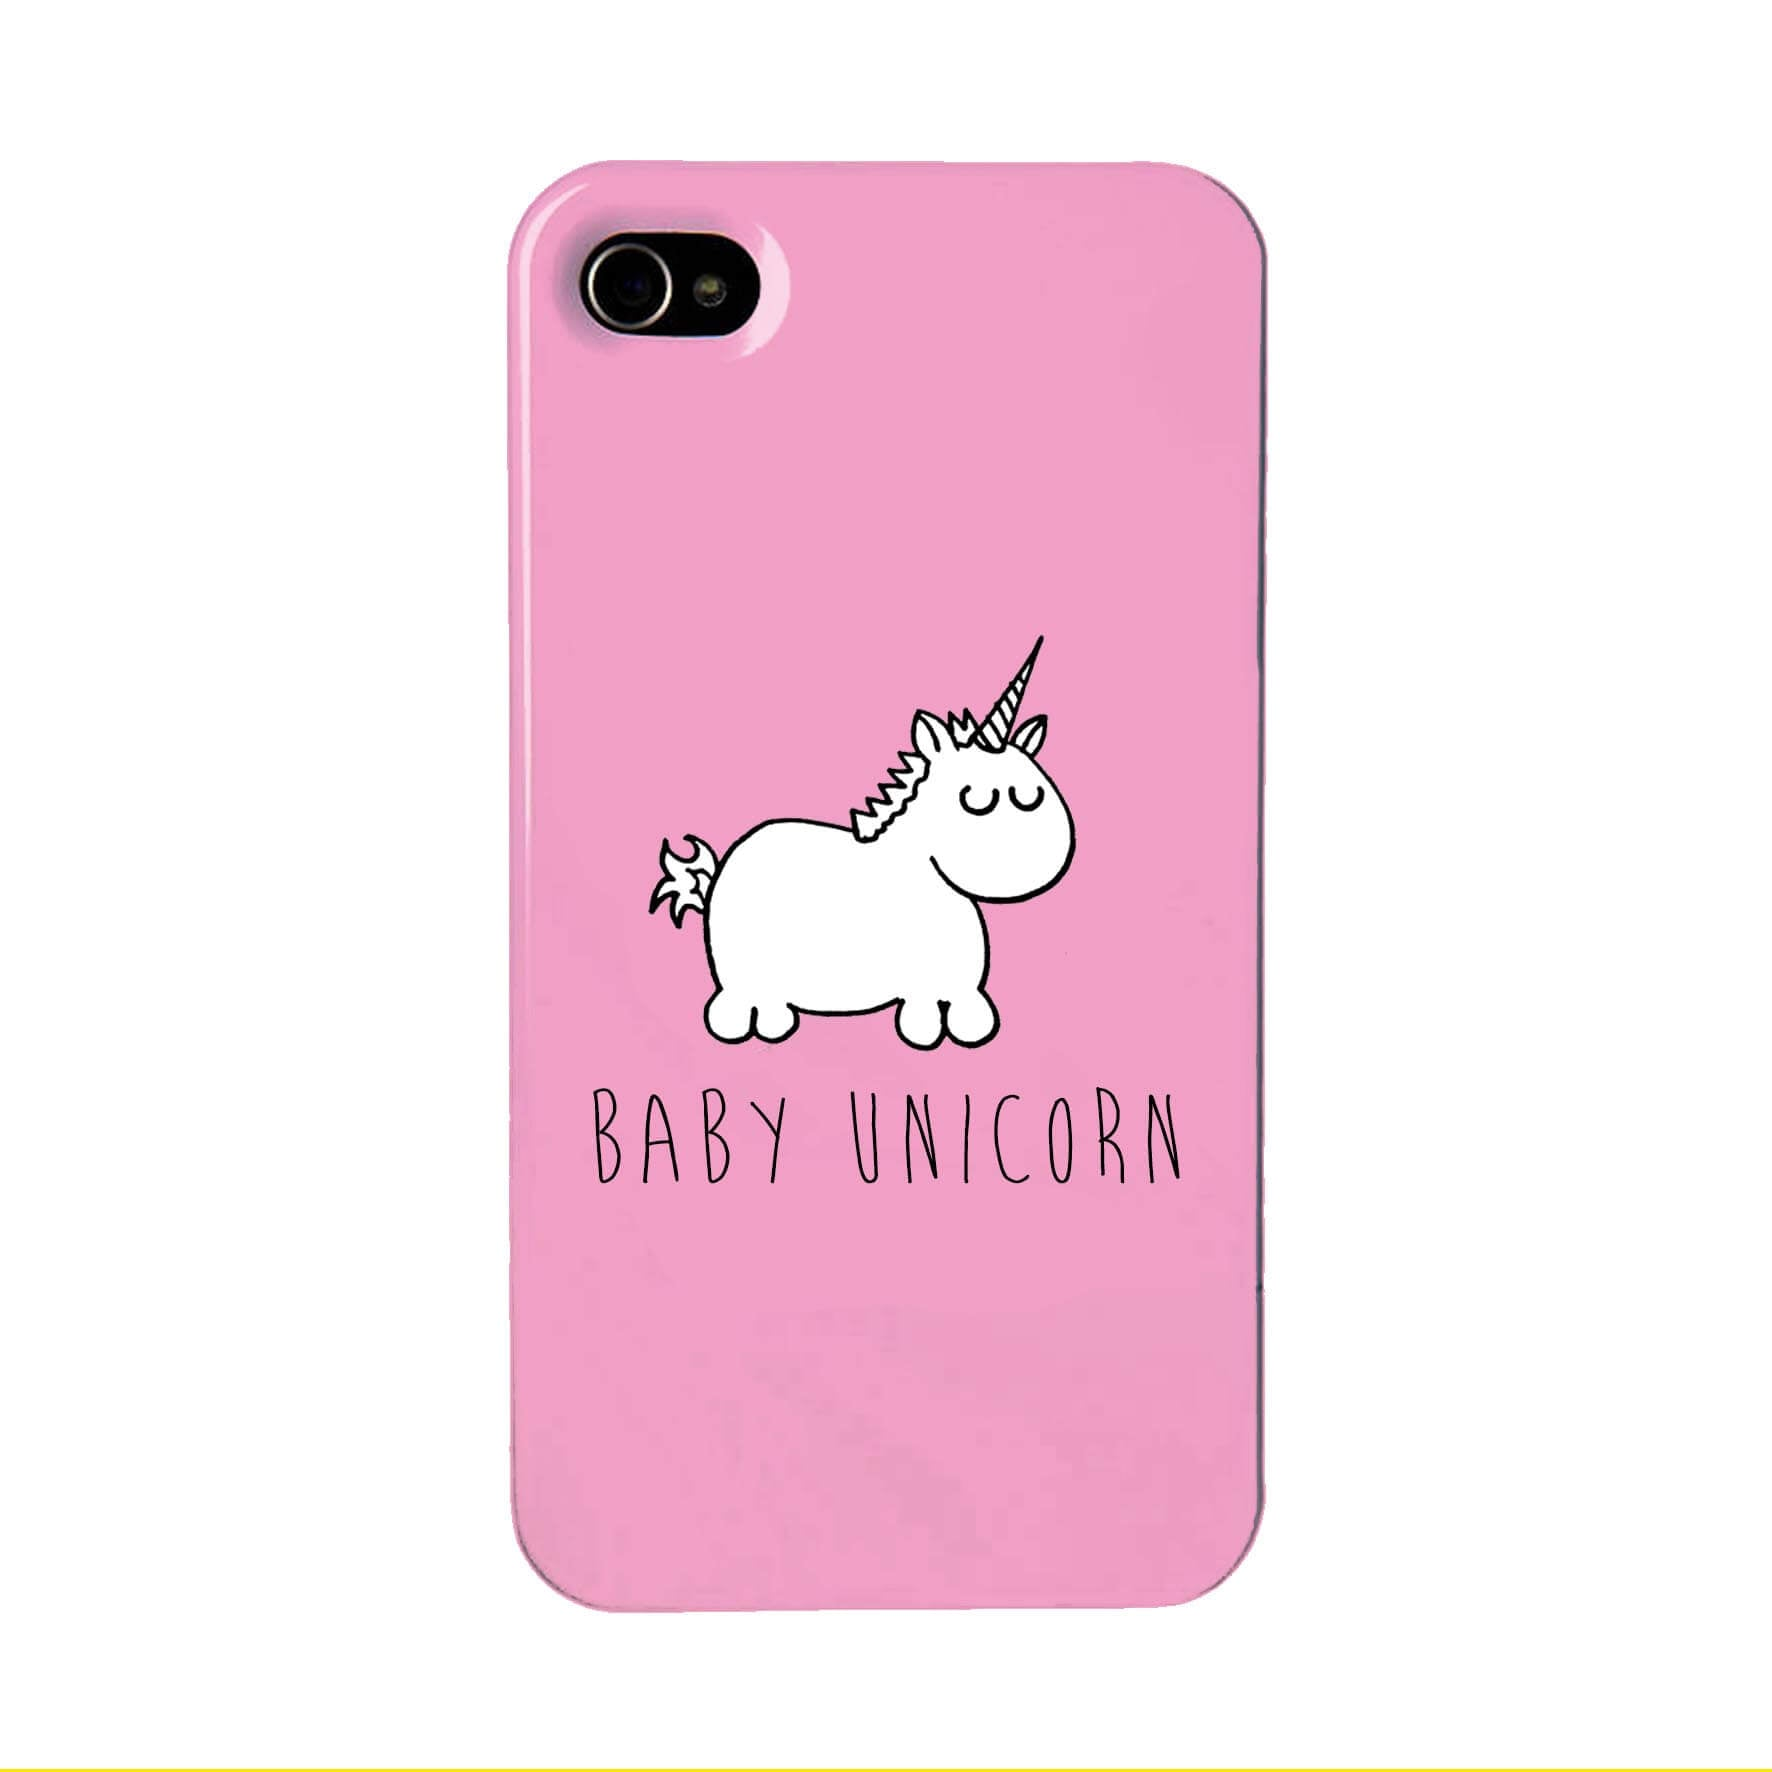 Pink phone case with an illustration of a baby unicorn